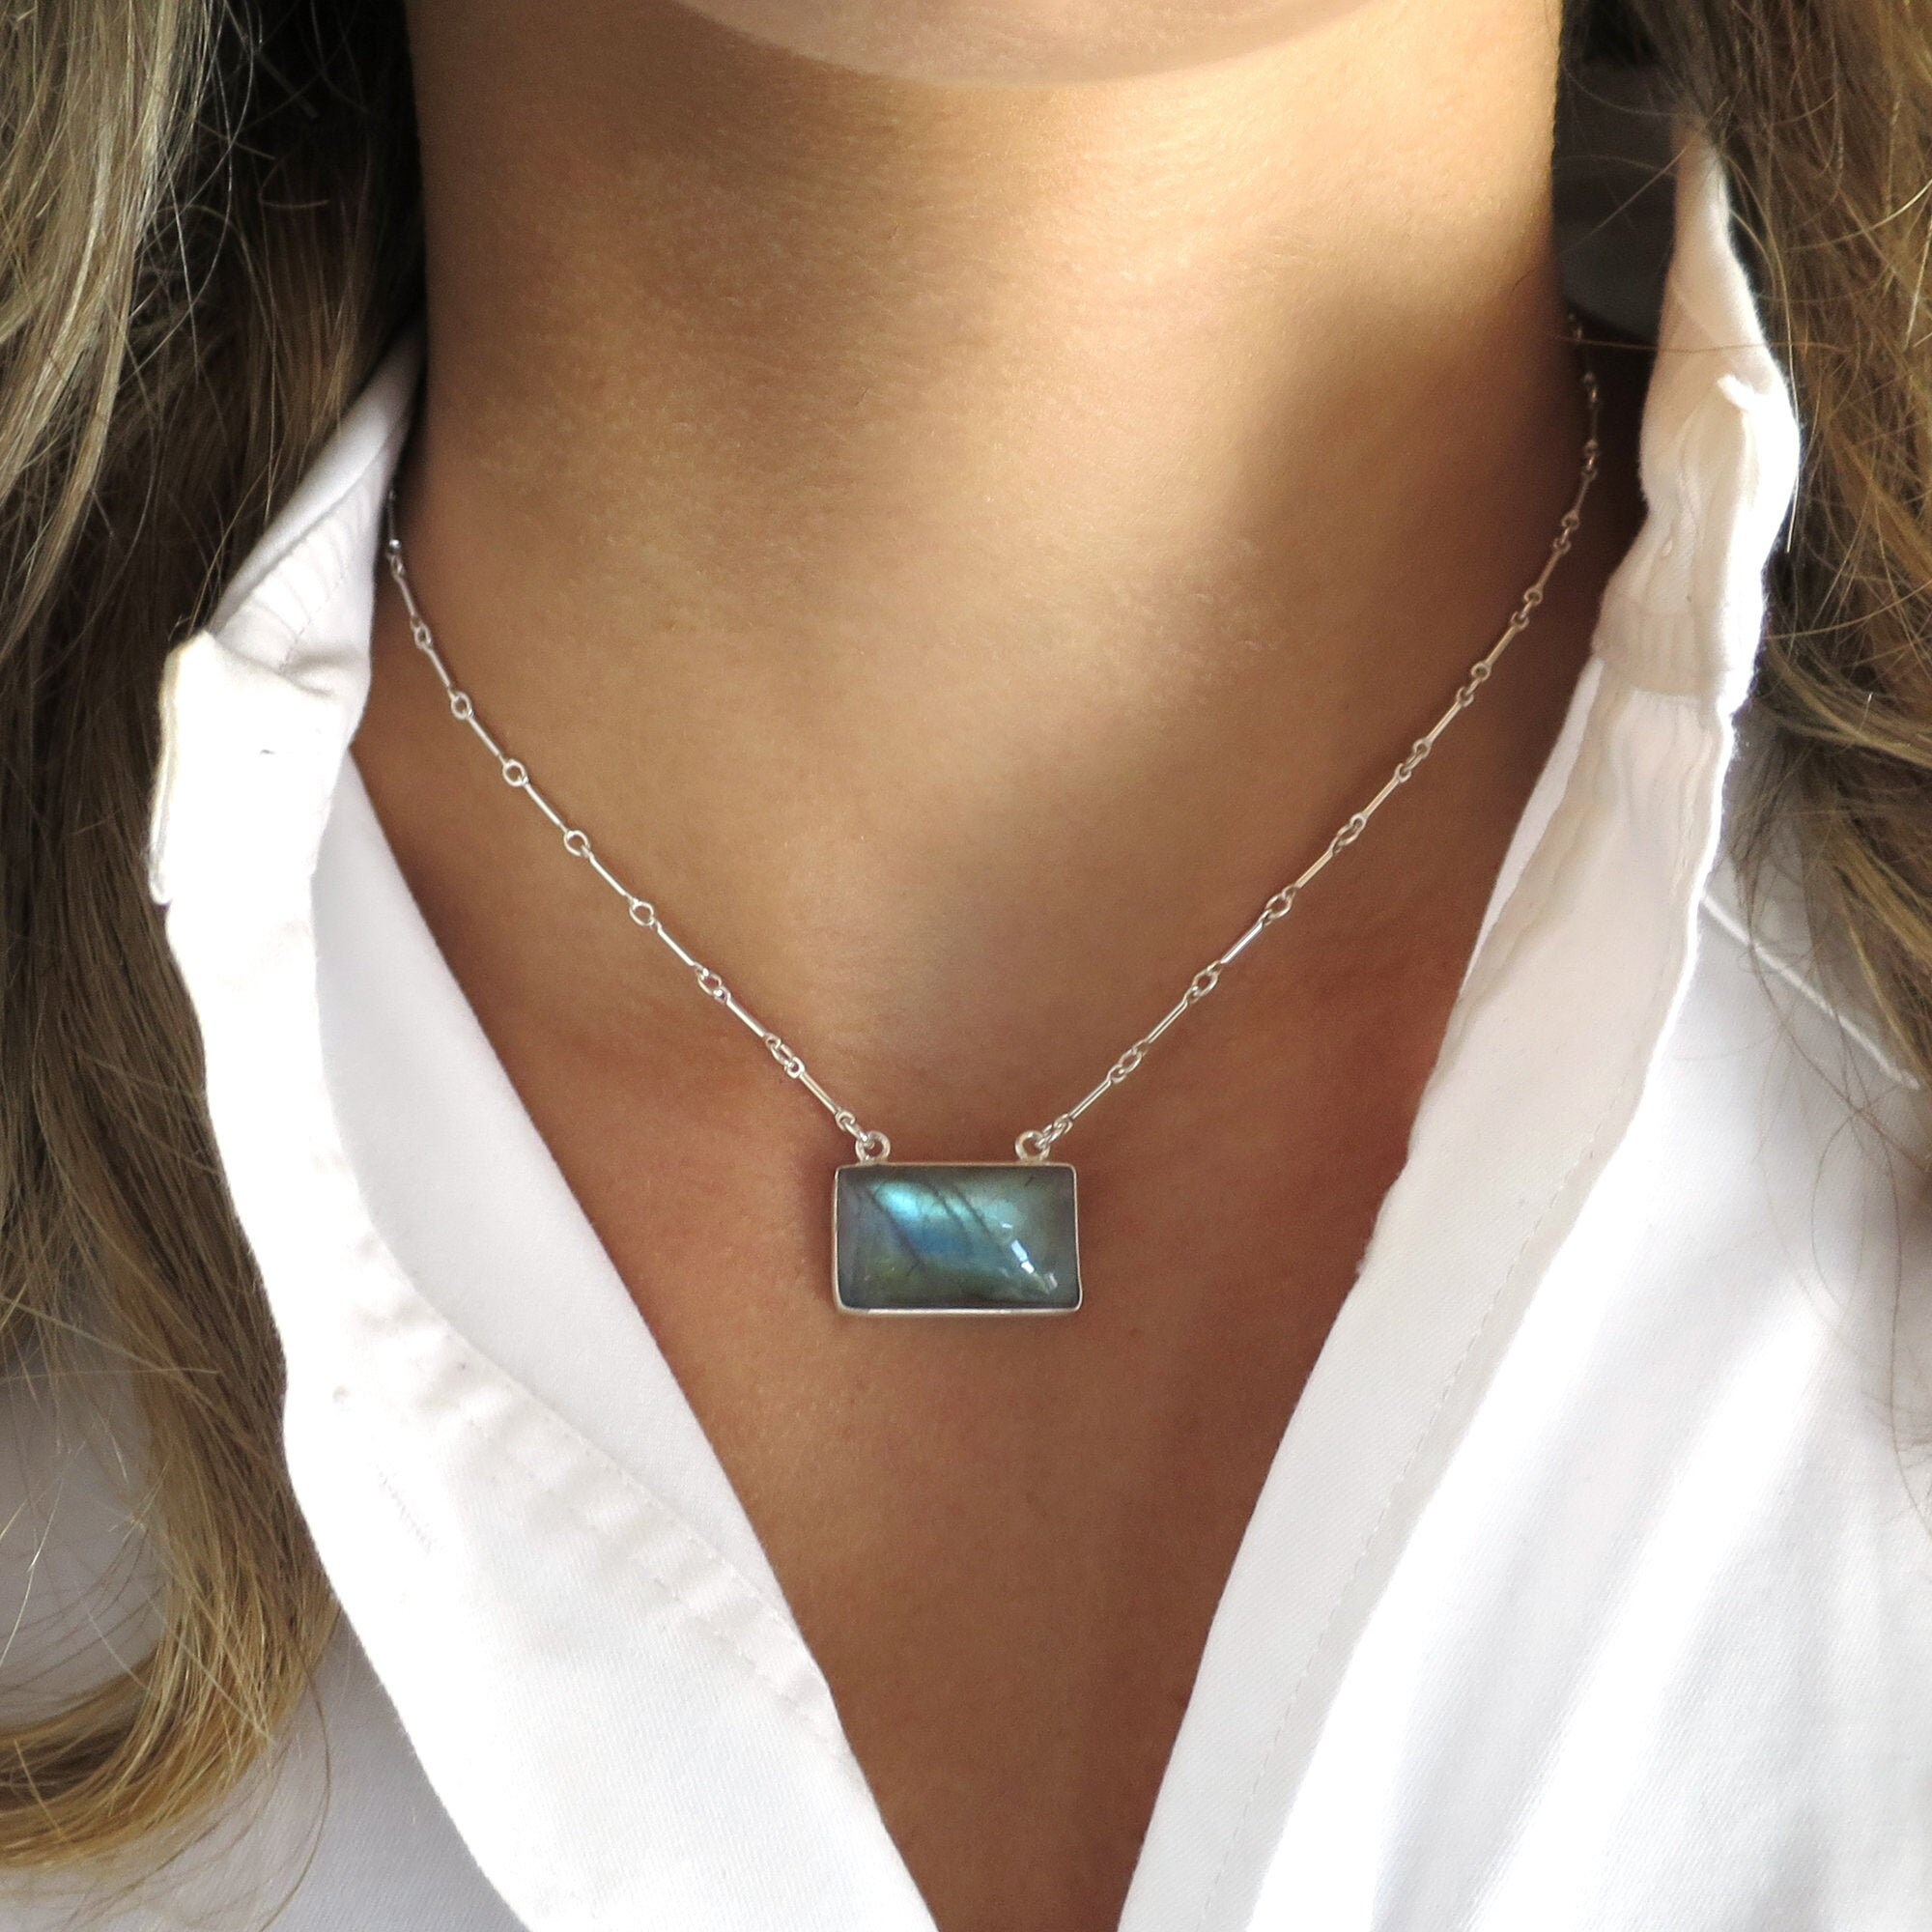 14k Gold Fill or Sterling Silver Labradorite Necklace Stone Y Necklace Lariat Y Necklace Labradorite Lariat Necklace Celebrity Jewelry